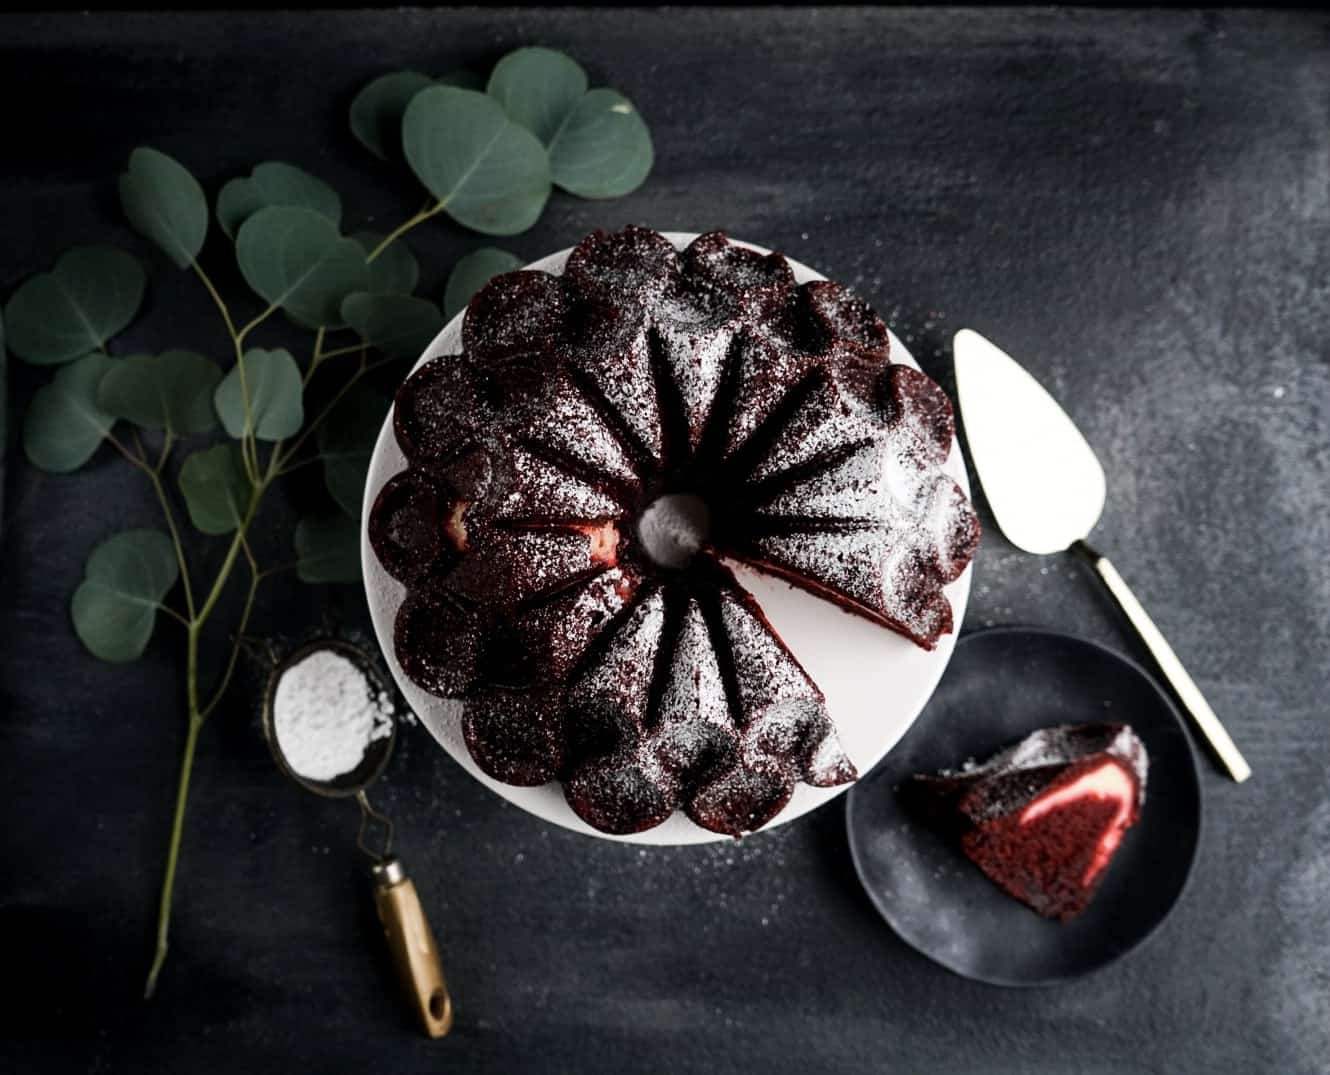 red velvet cream cheese bundt cake with a slice taken out